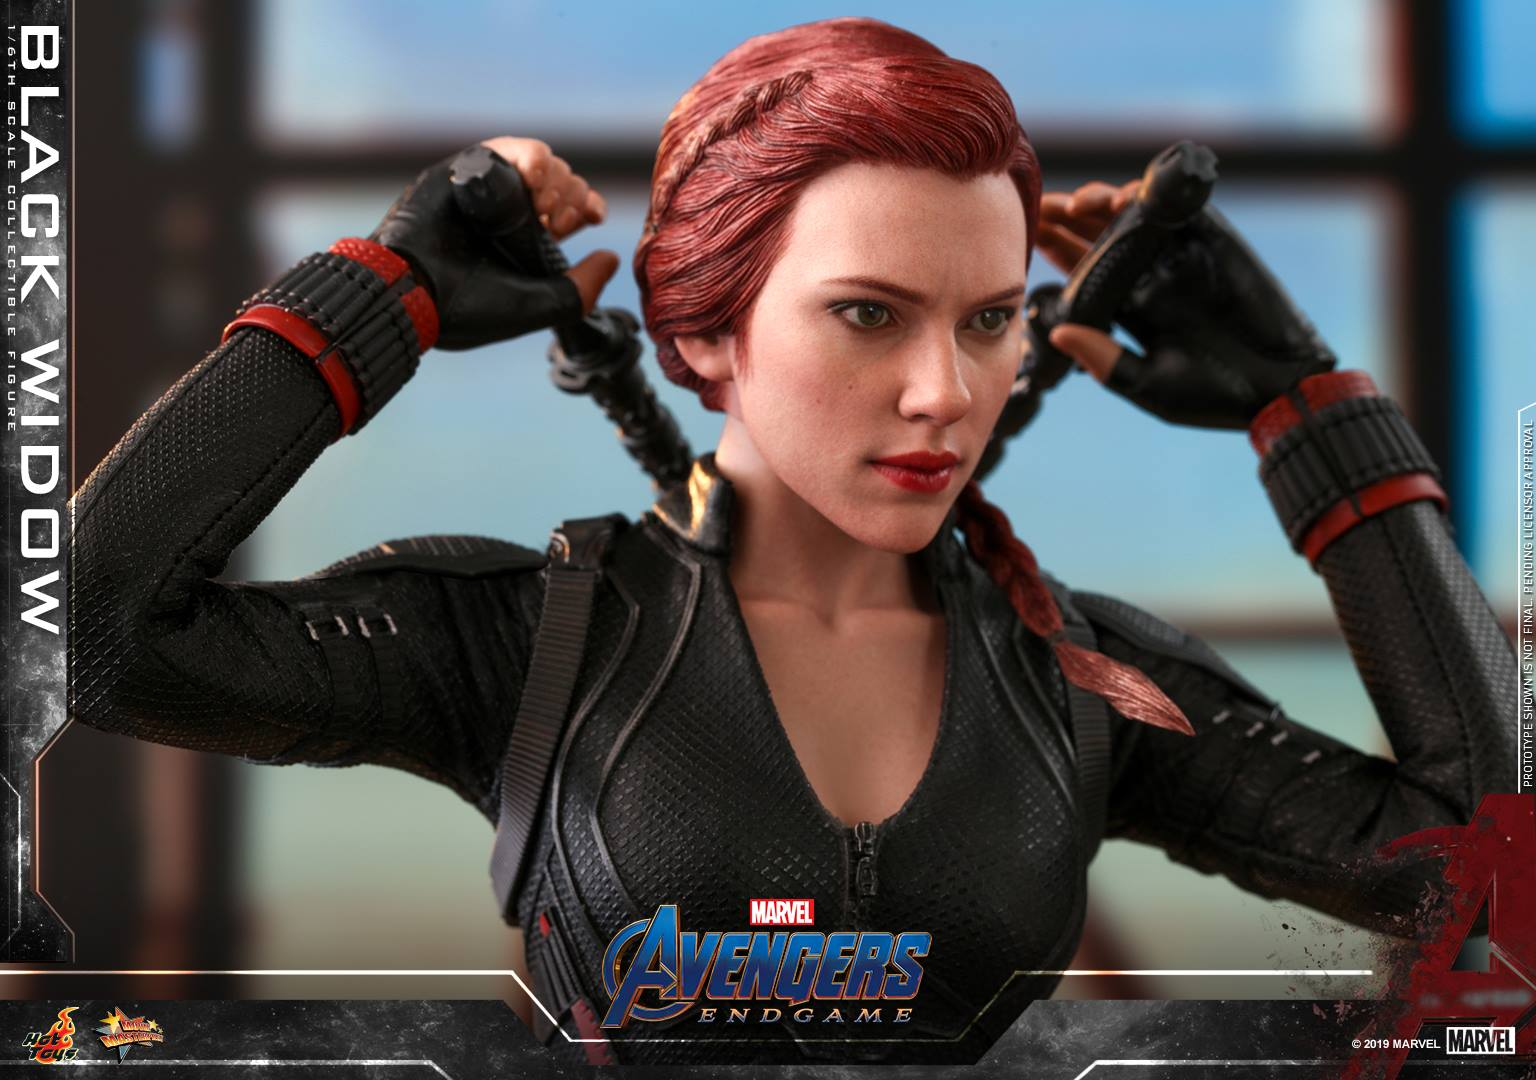 Hot Toys Avengers Endgame Black Widow Figure Putting Sticks Up Lyles Movie Files